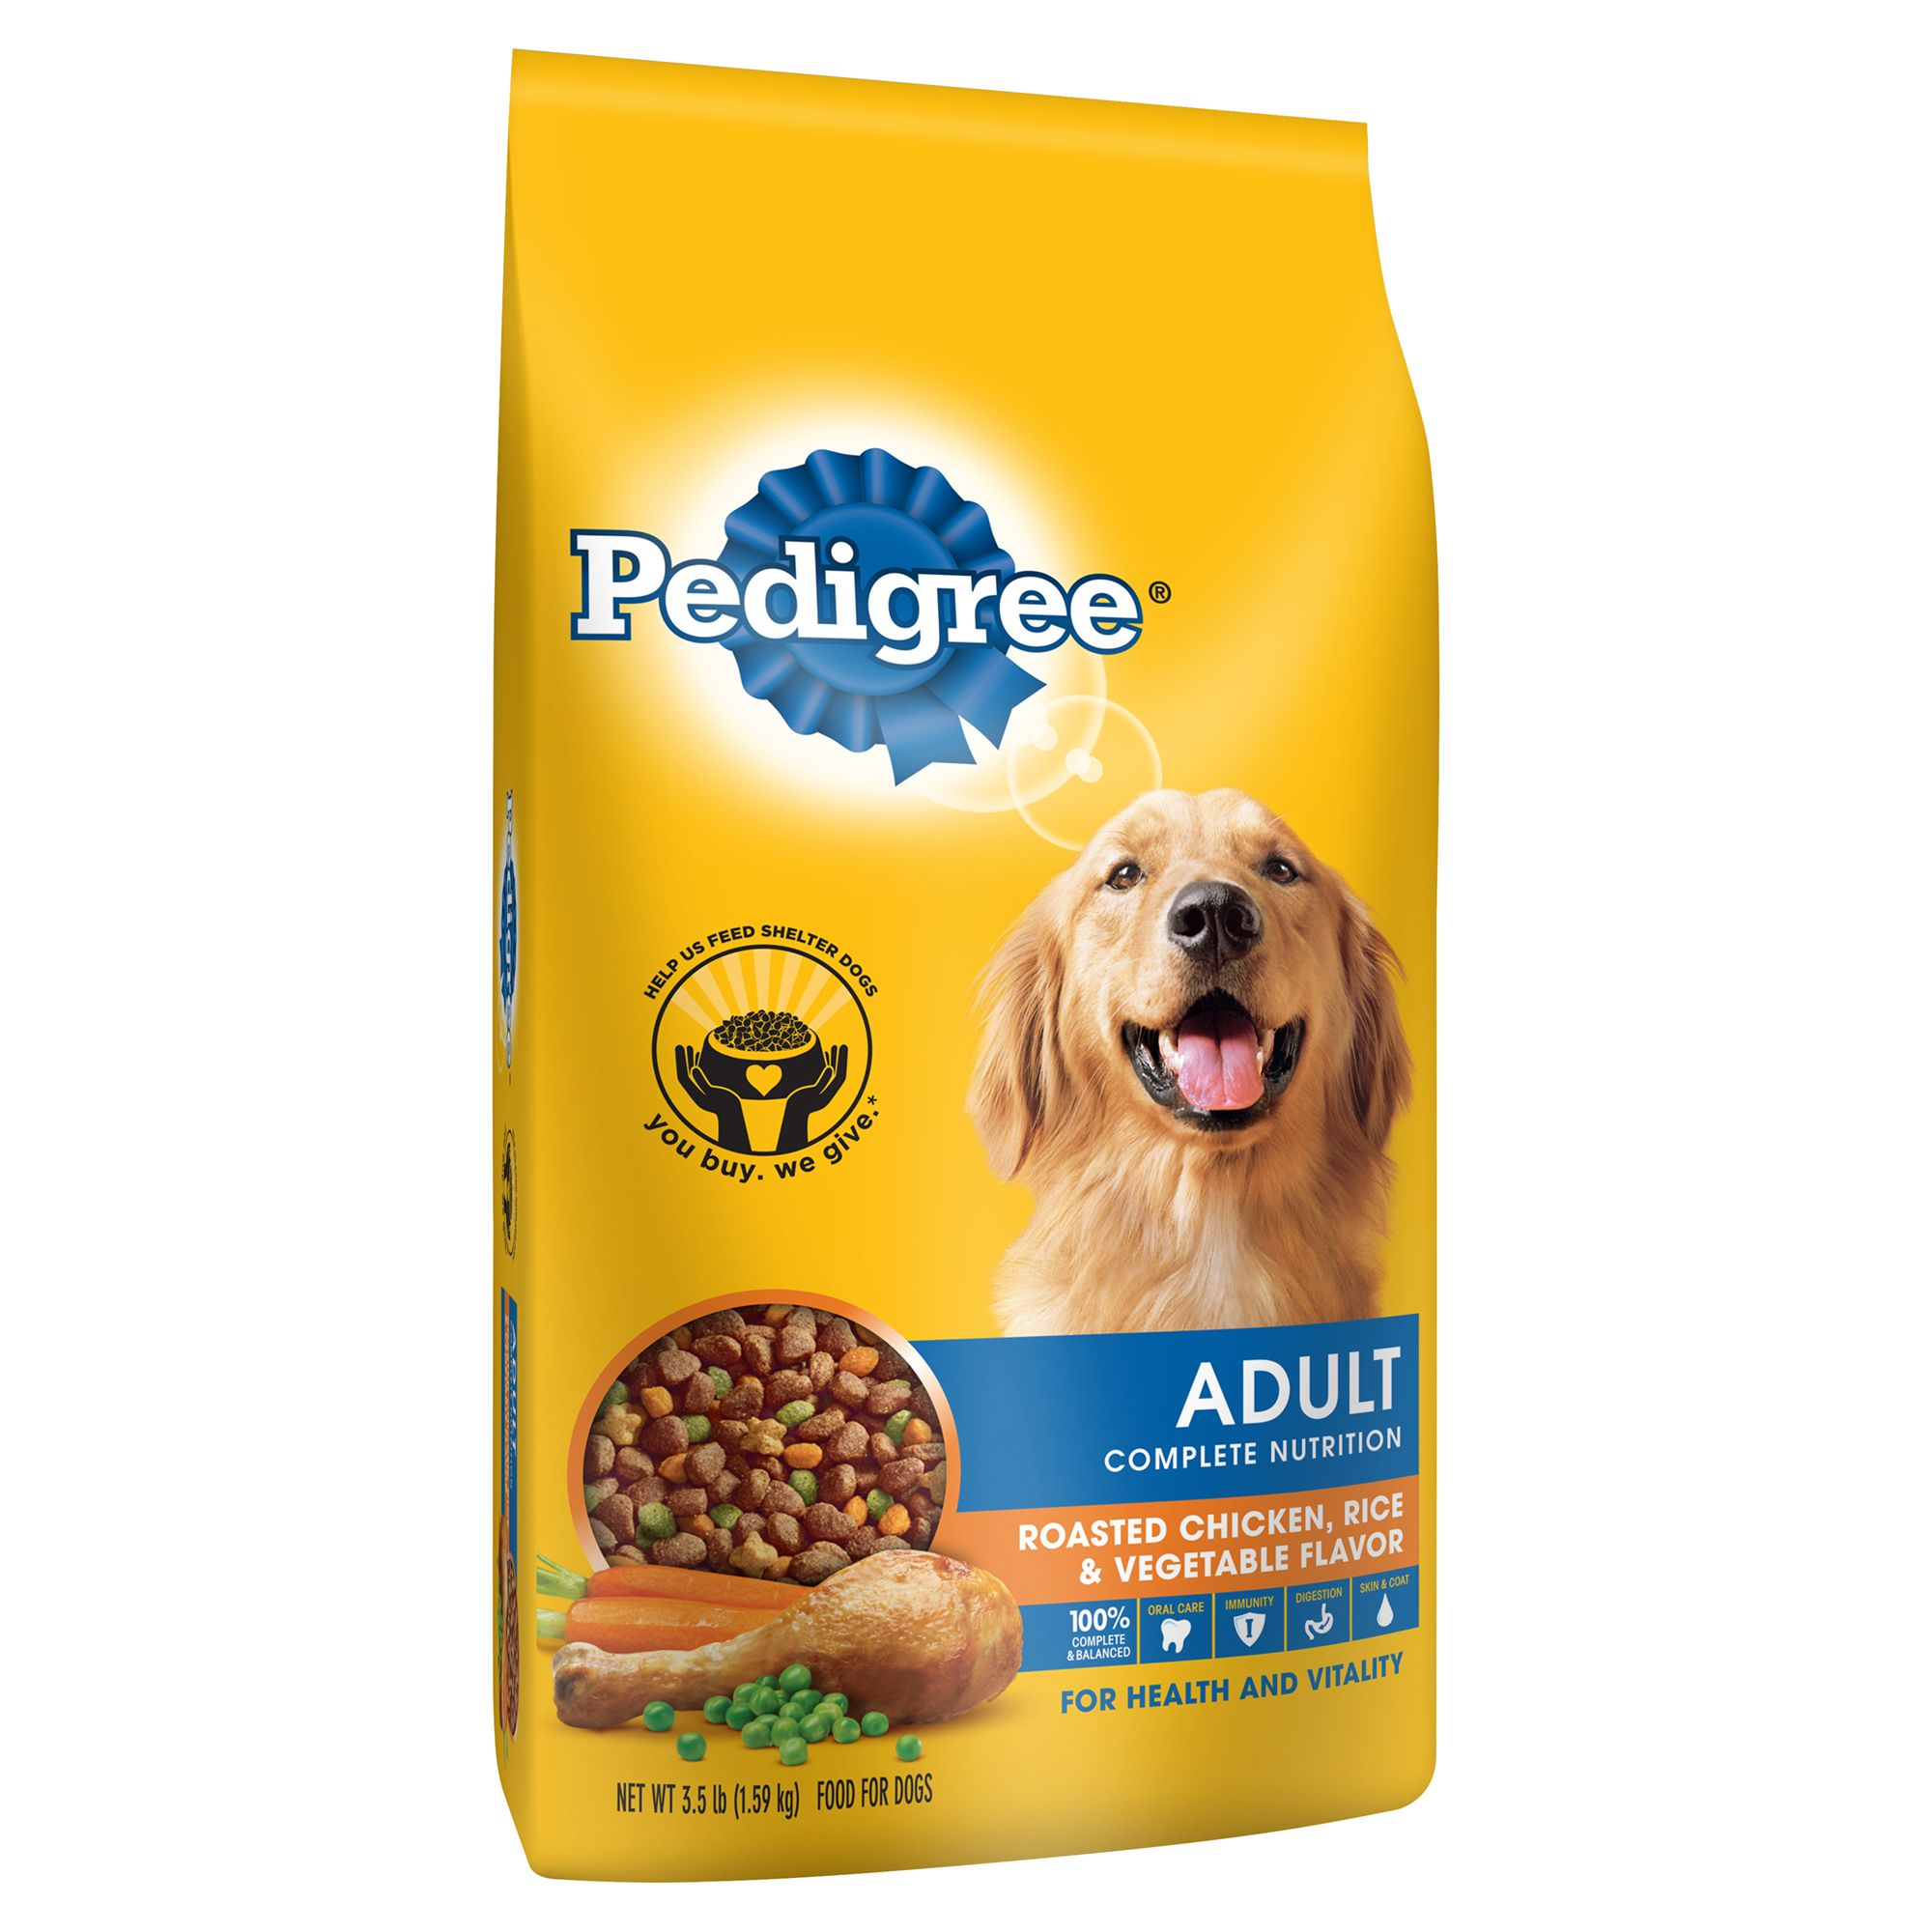 photo about Caesars Dog Food Printable Coupons identified as 16 Extraordinary Info Pertaining to Pedigree Pet Foods Printable